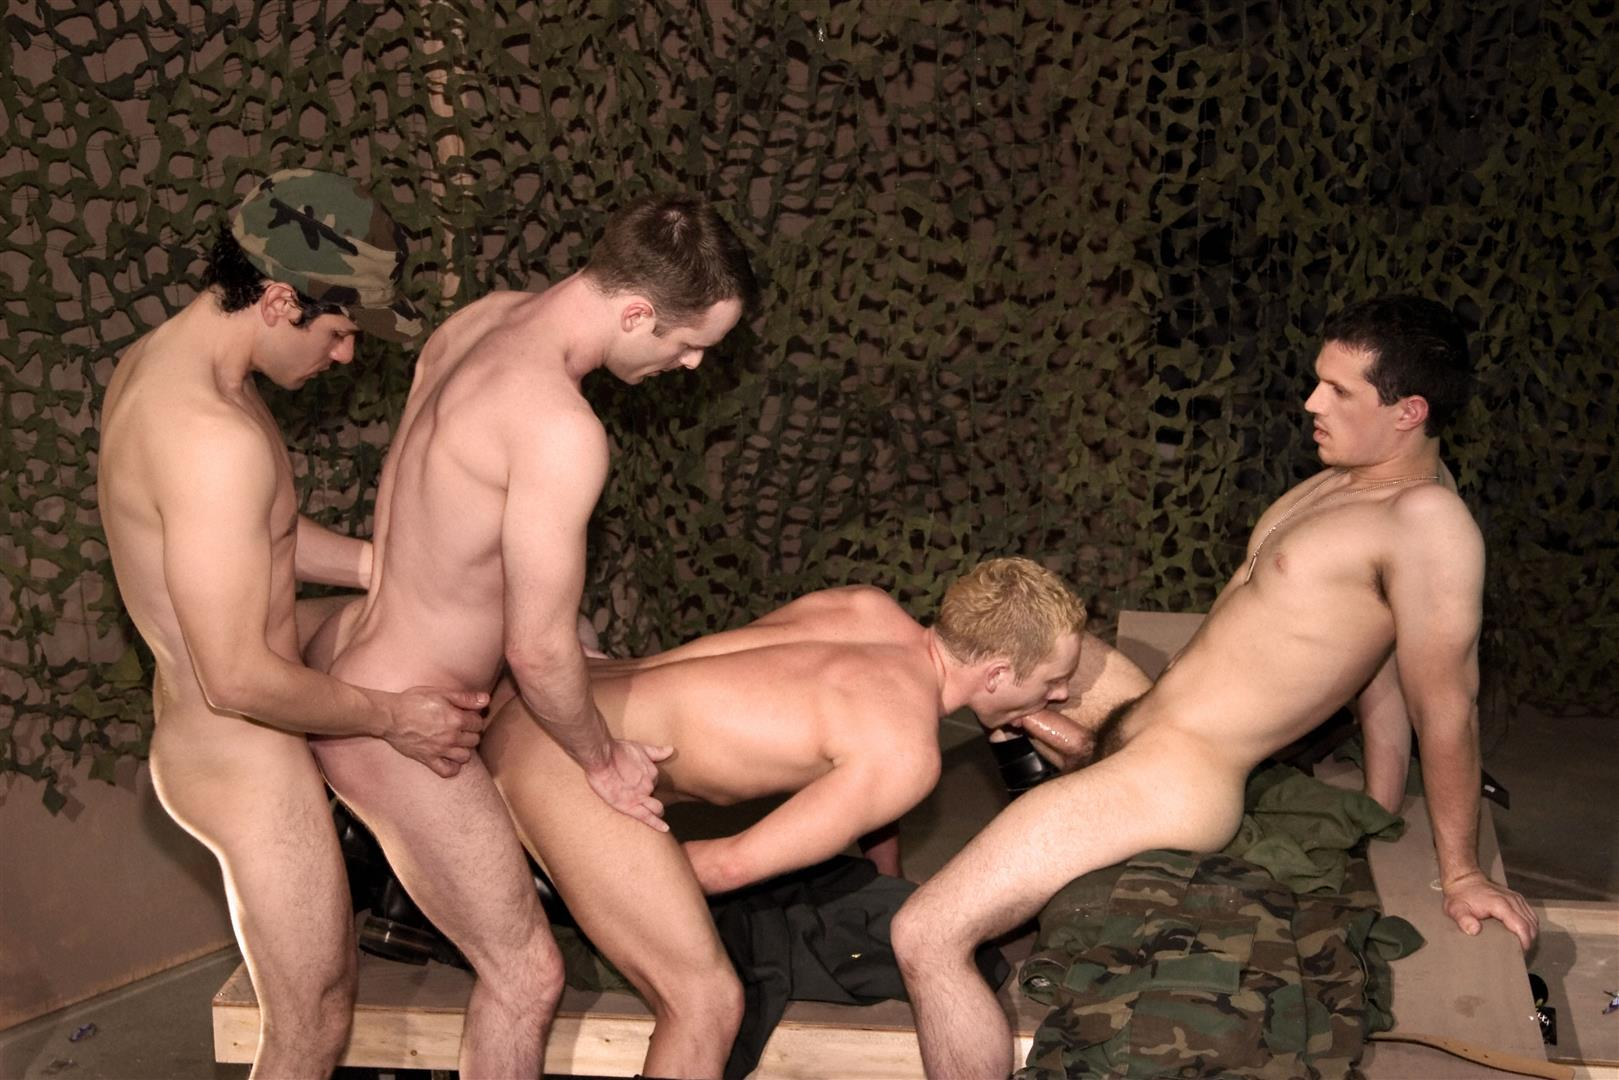 Titan-Men-Boot-Camp-Gay-Military-Sex-Naked-Soldiers-Fucking-19 Titan Men Releases Steamy Gay Military Sex Series:  Boot Camp